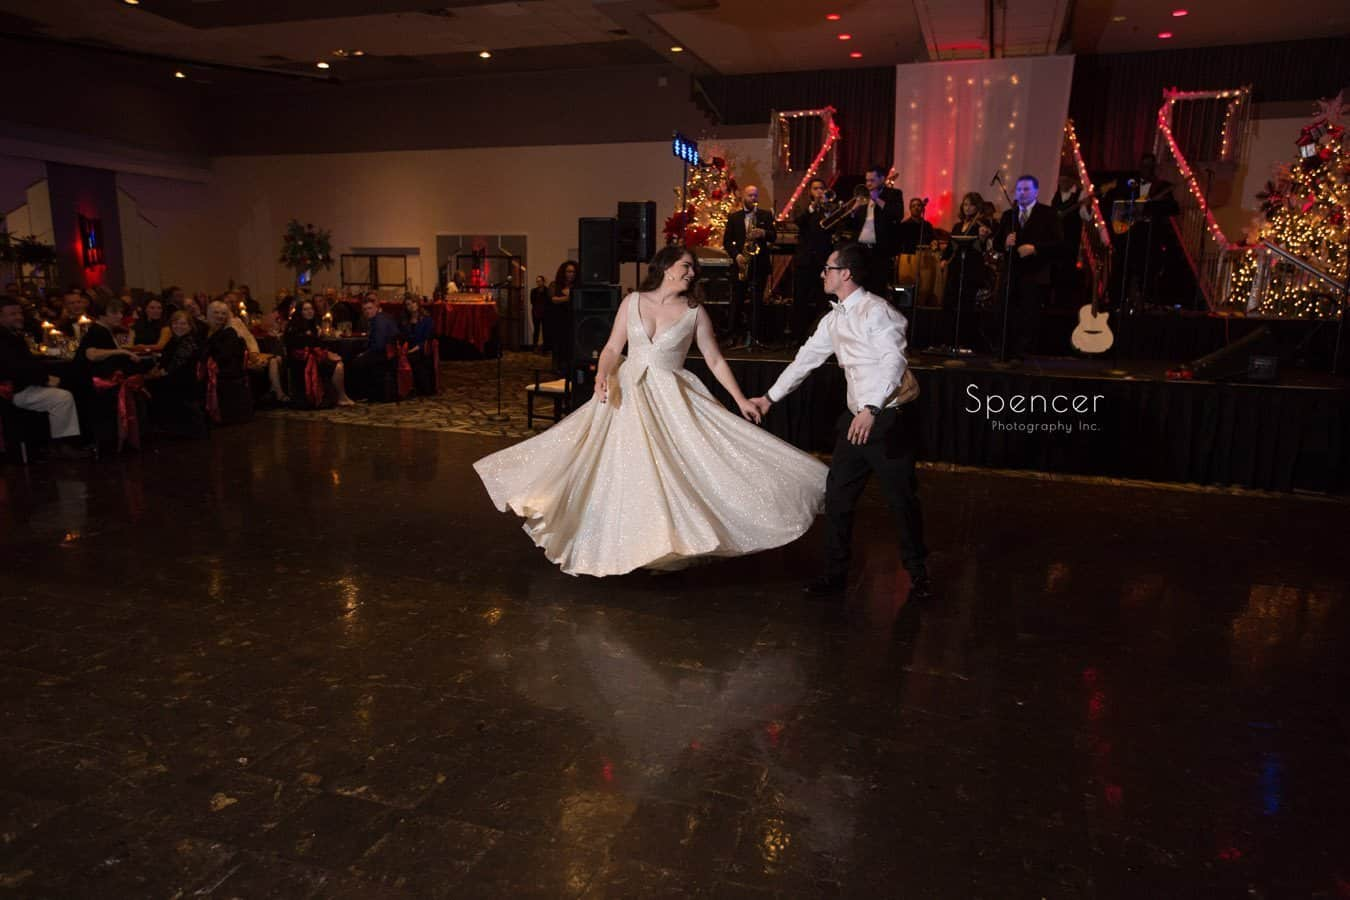 groom spins bride during first dance at wedding reception at landerhaven